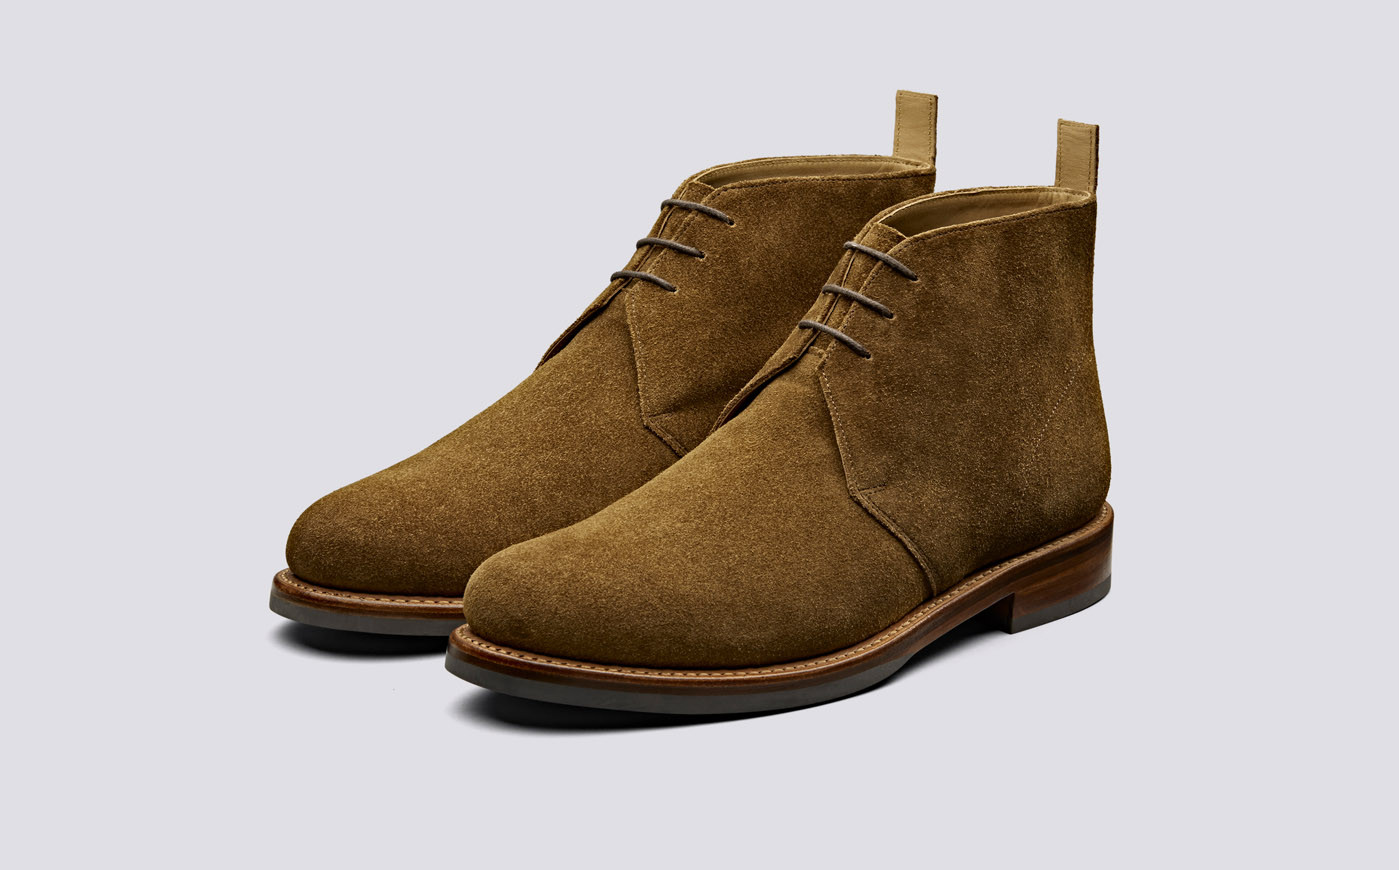 Suede_Shoes_6_-_Grenson